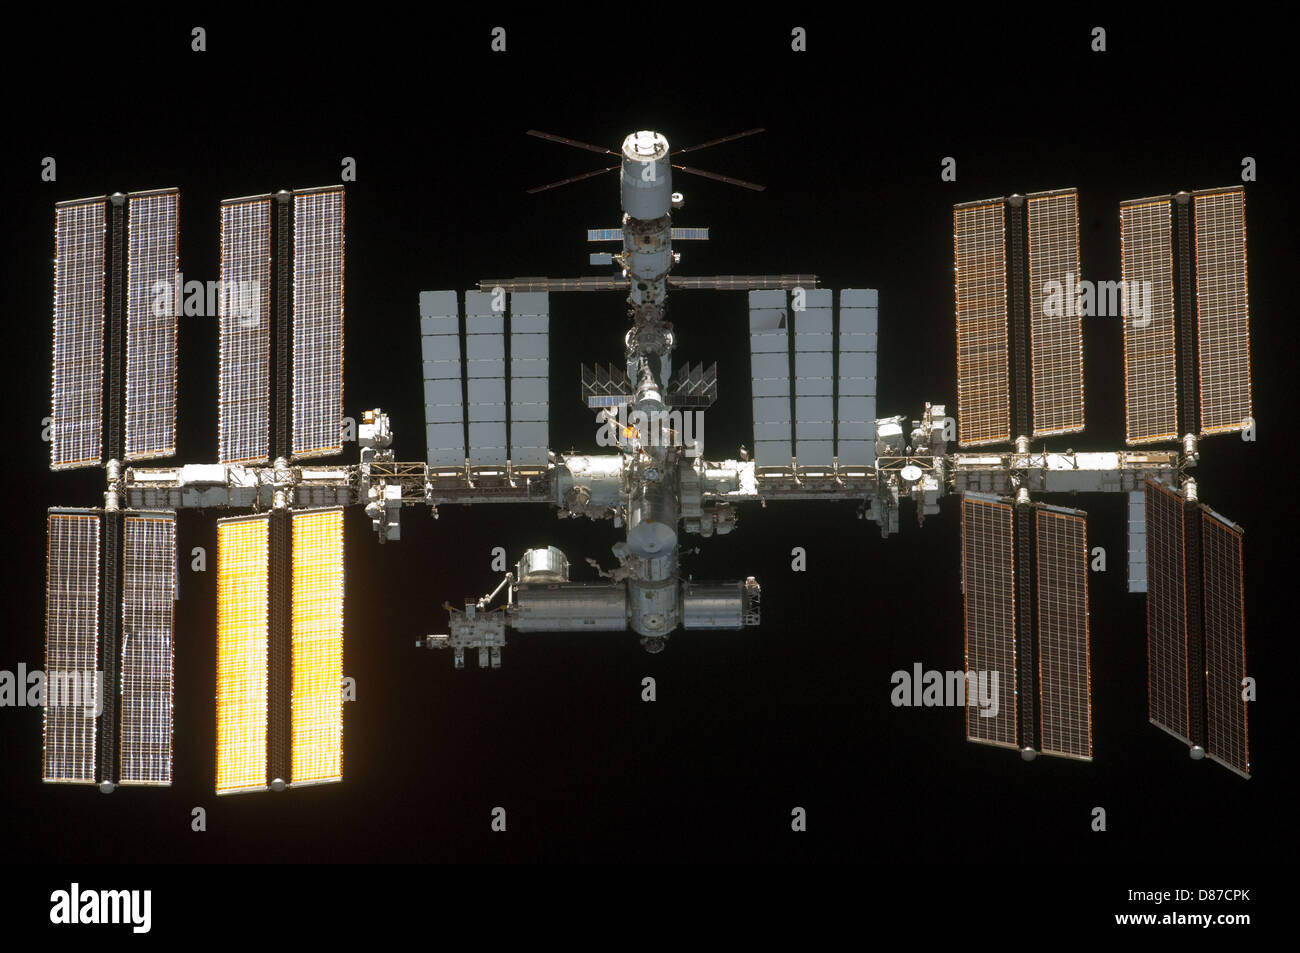 STS-134 International Space Station after undocking 1.jpg - Stock Image